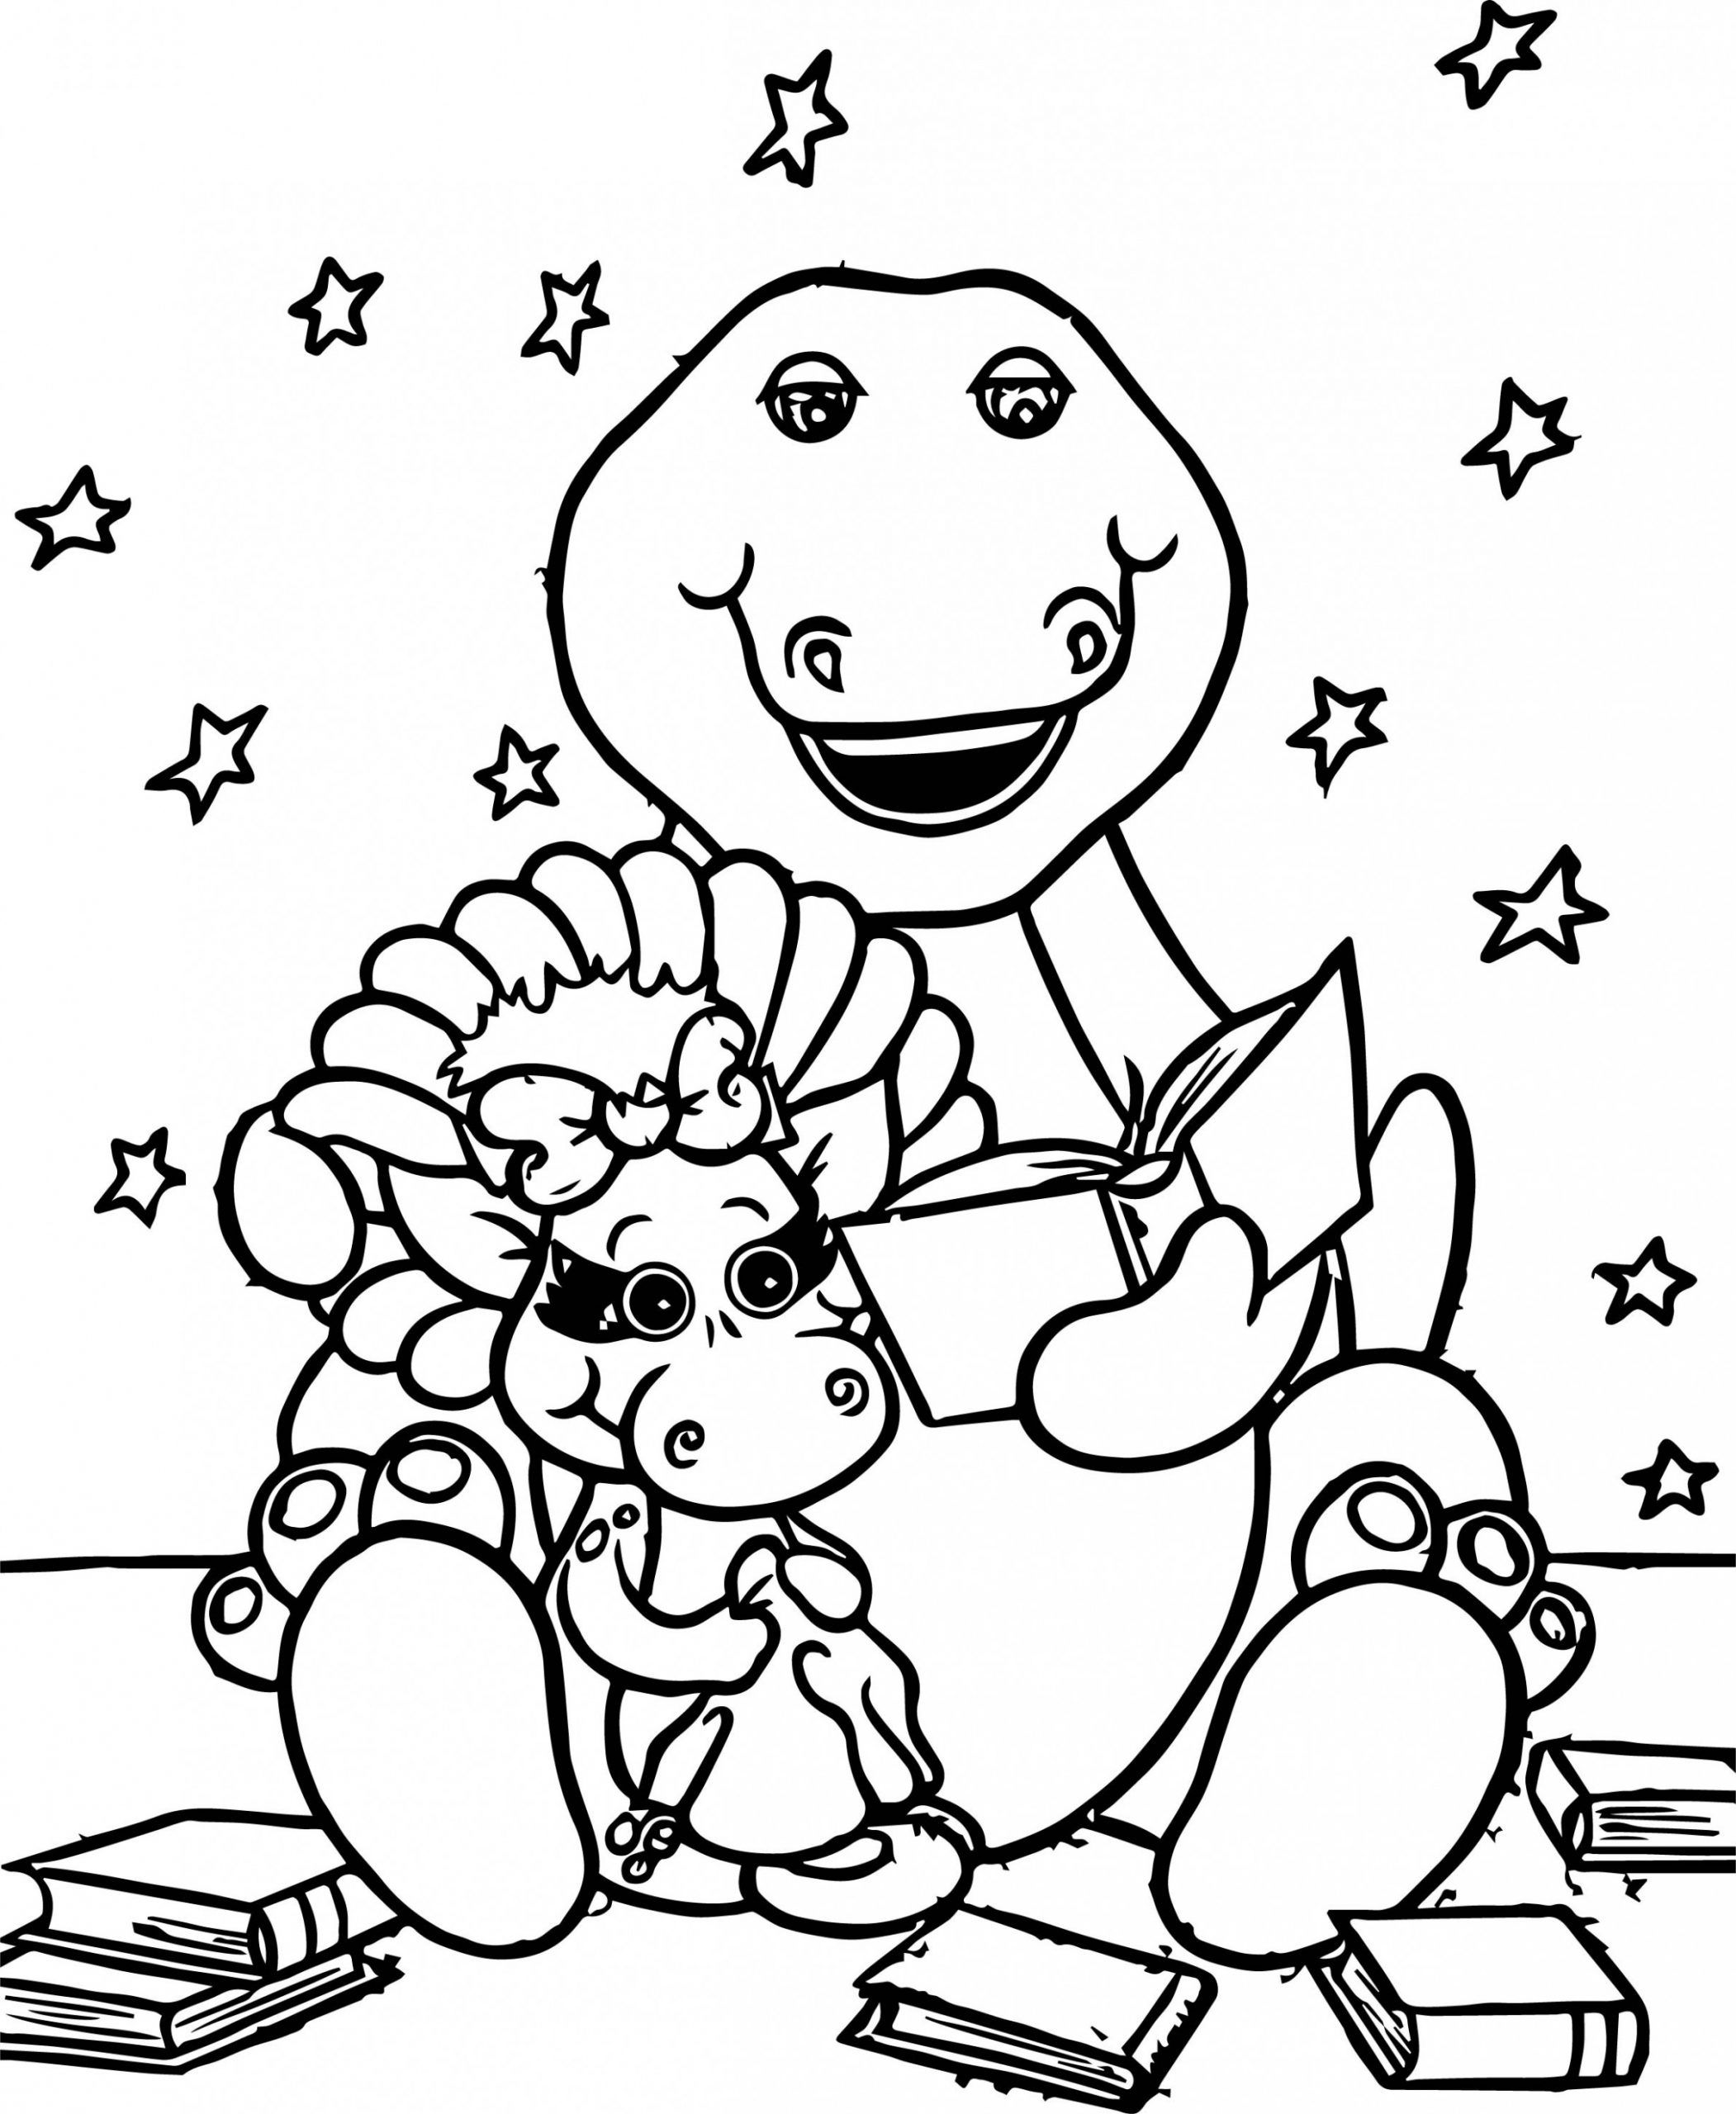 Disney Frozen Coloring Pages For Kids By Setoys Youtube Elsa Coloring Pages Frozen Coloring Frozen Coloring Pages